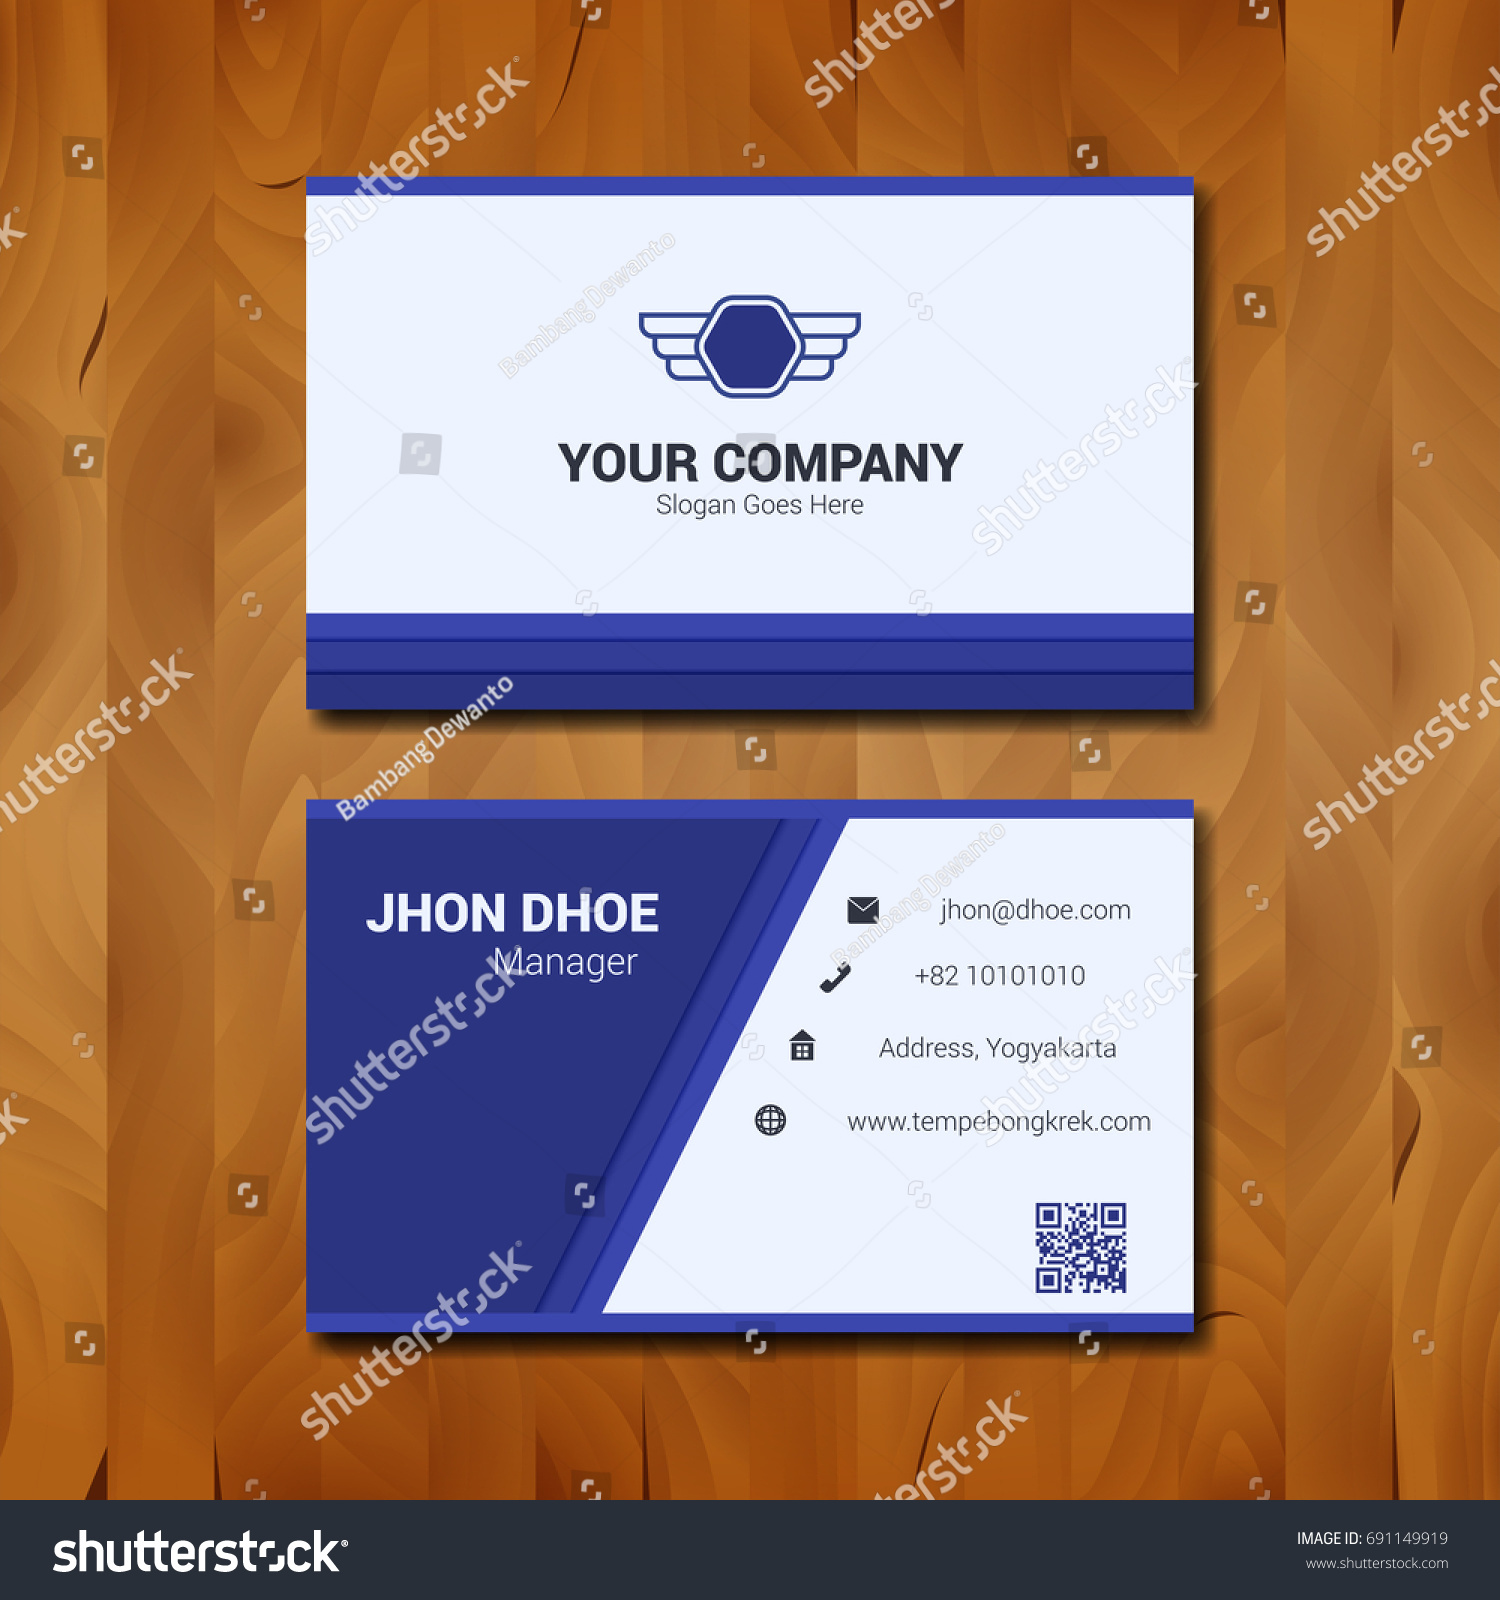 Simple Business Card Template Design Company Stock Vector 691149919 ...